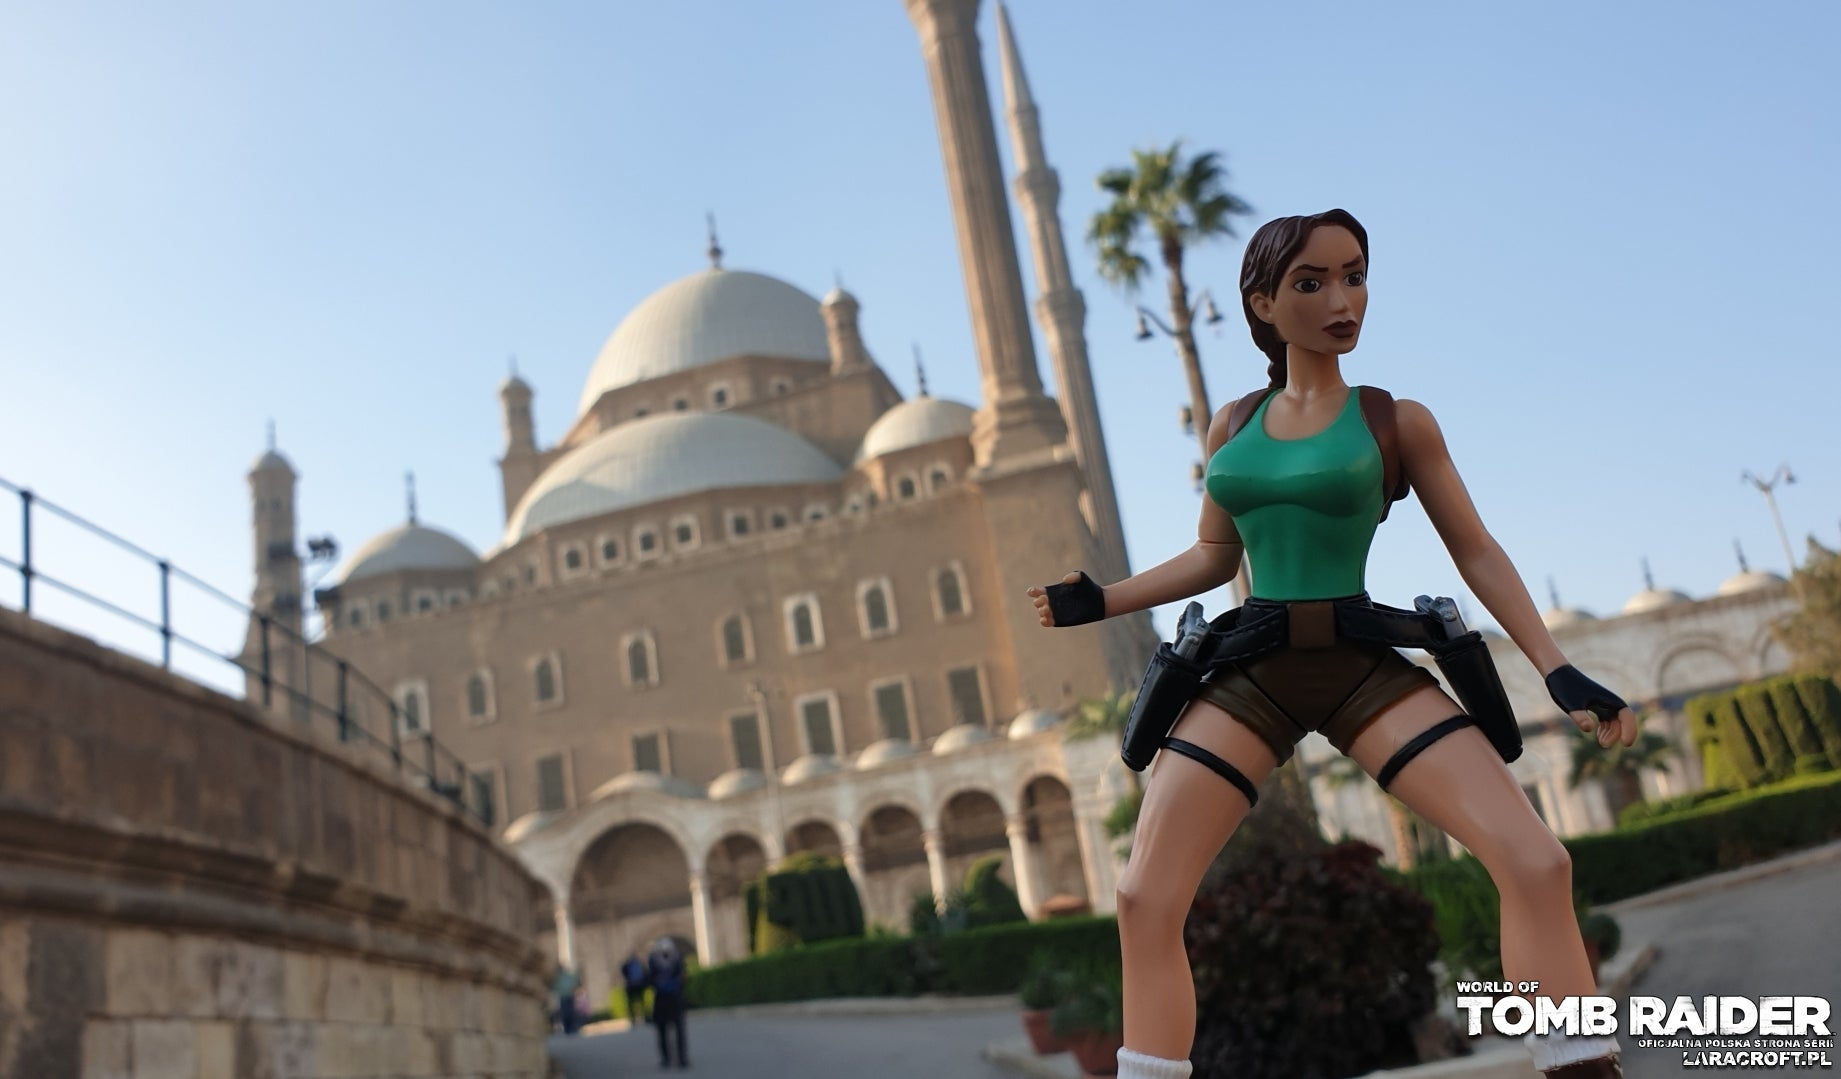 A photograph of a Lara Croft figure in front of Cairo's Citadel gate in Egypt